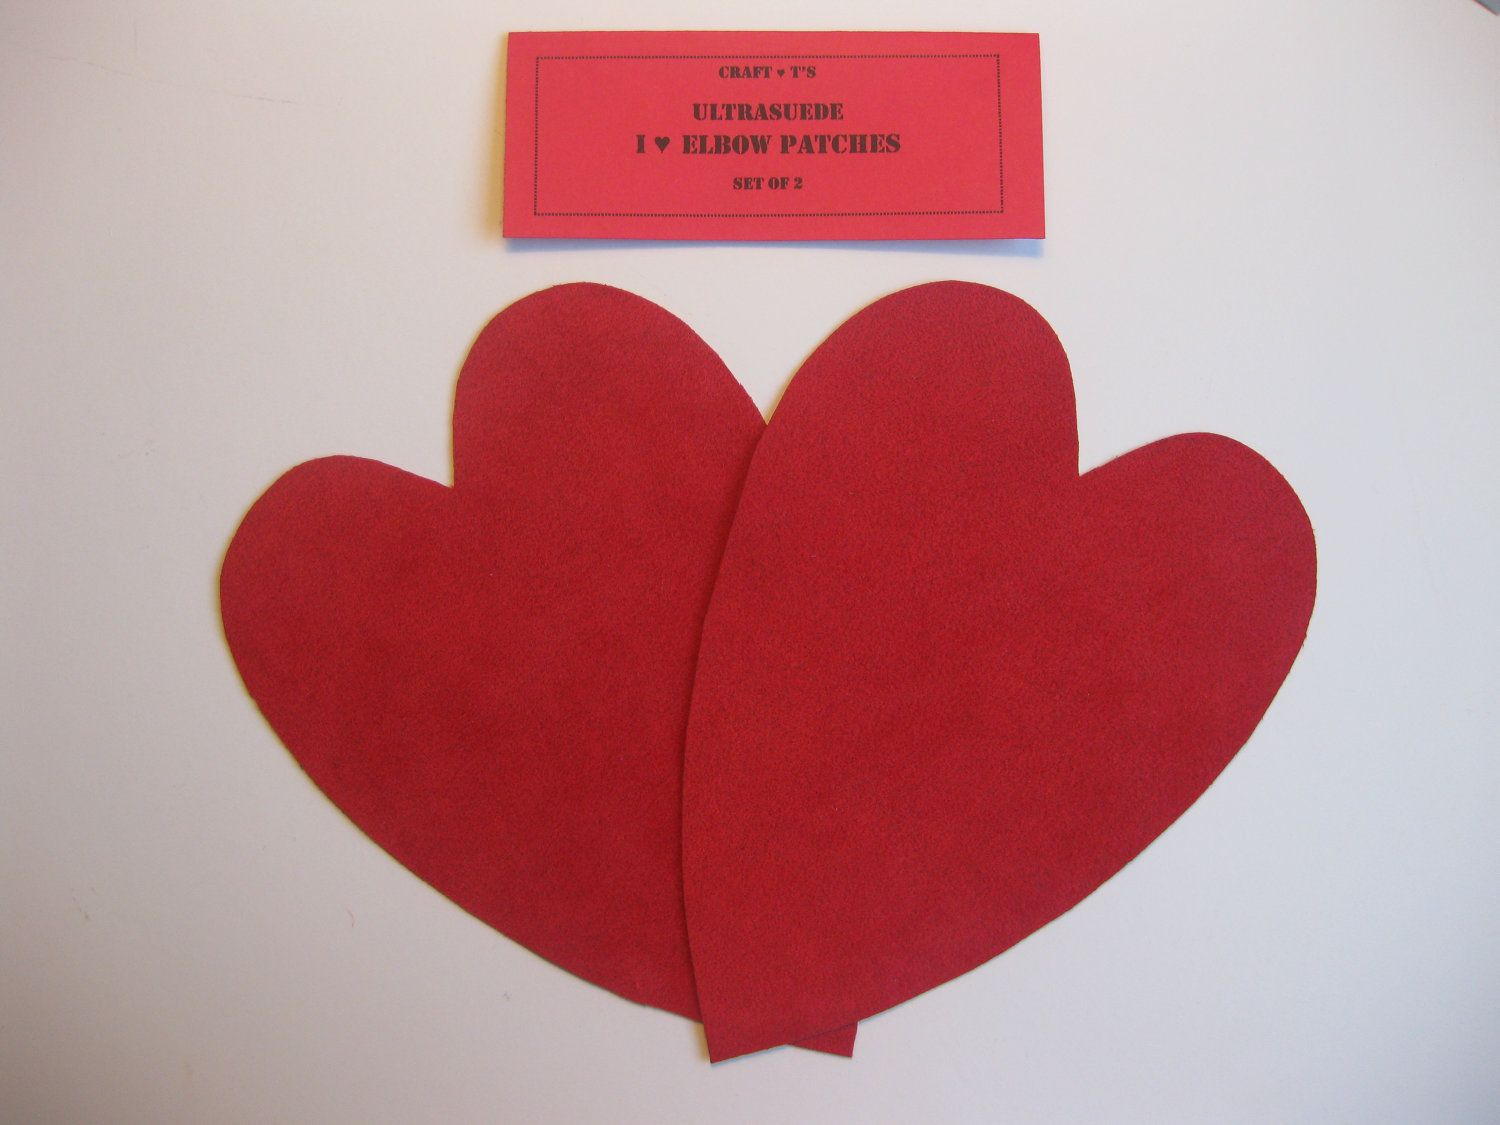 Elbow Patches - Red Heart Ultrasuede - Set of 2. $6.00, via Etsy.